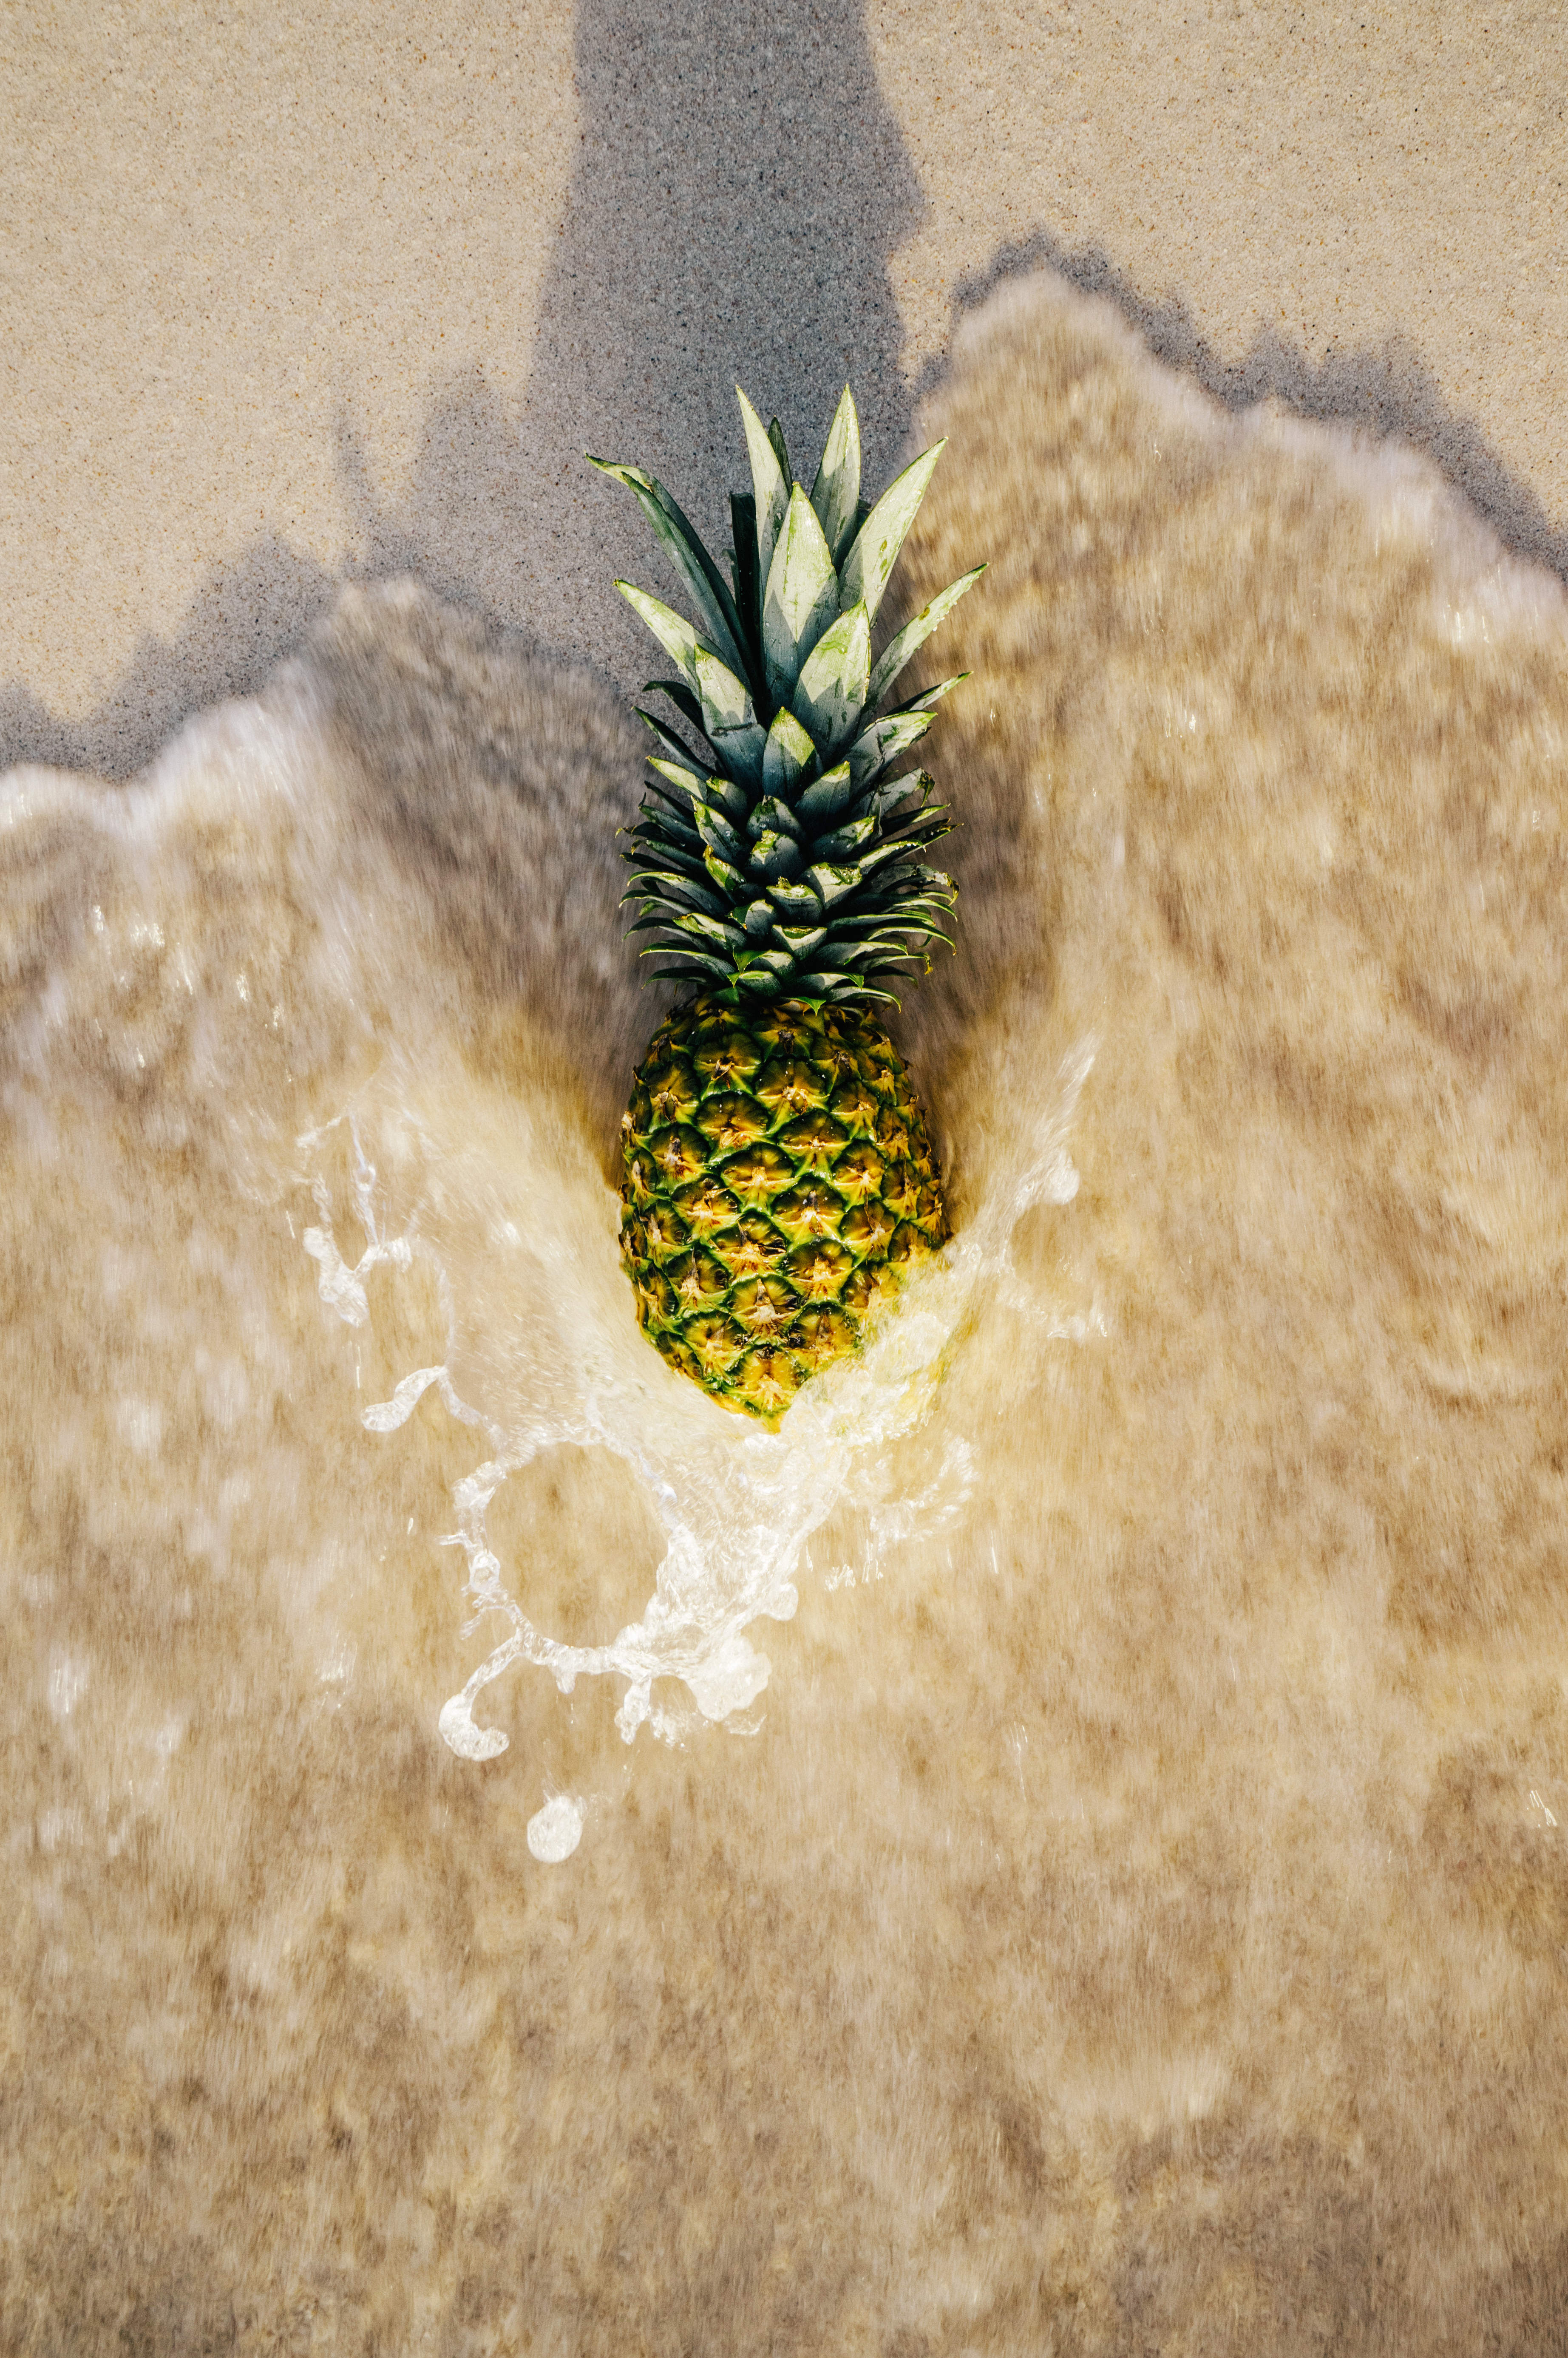 Cute Wallpapers Of Pineapples Pineapple Fruit On Shore 183 Free Stock Photo